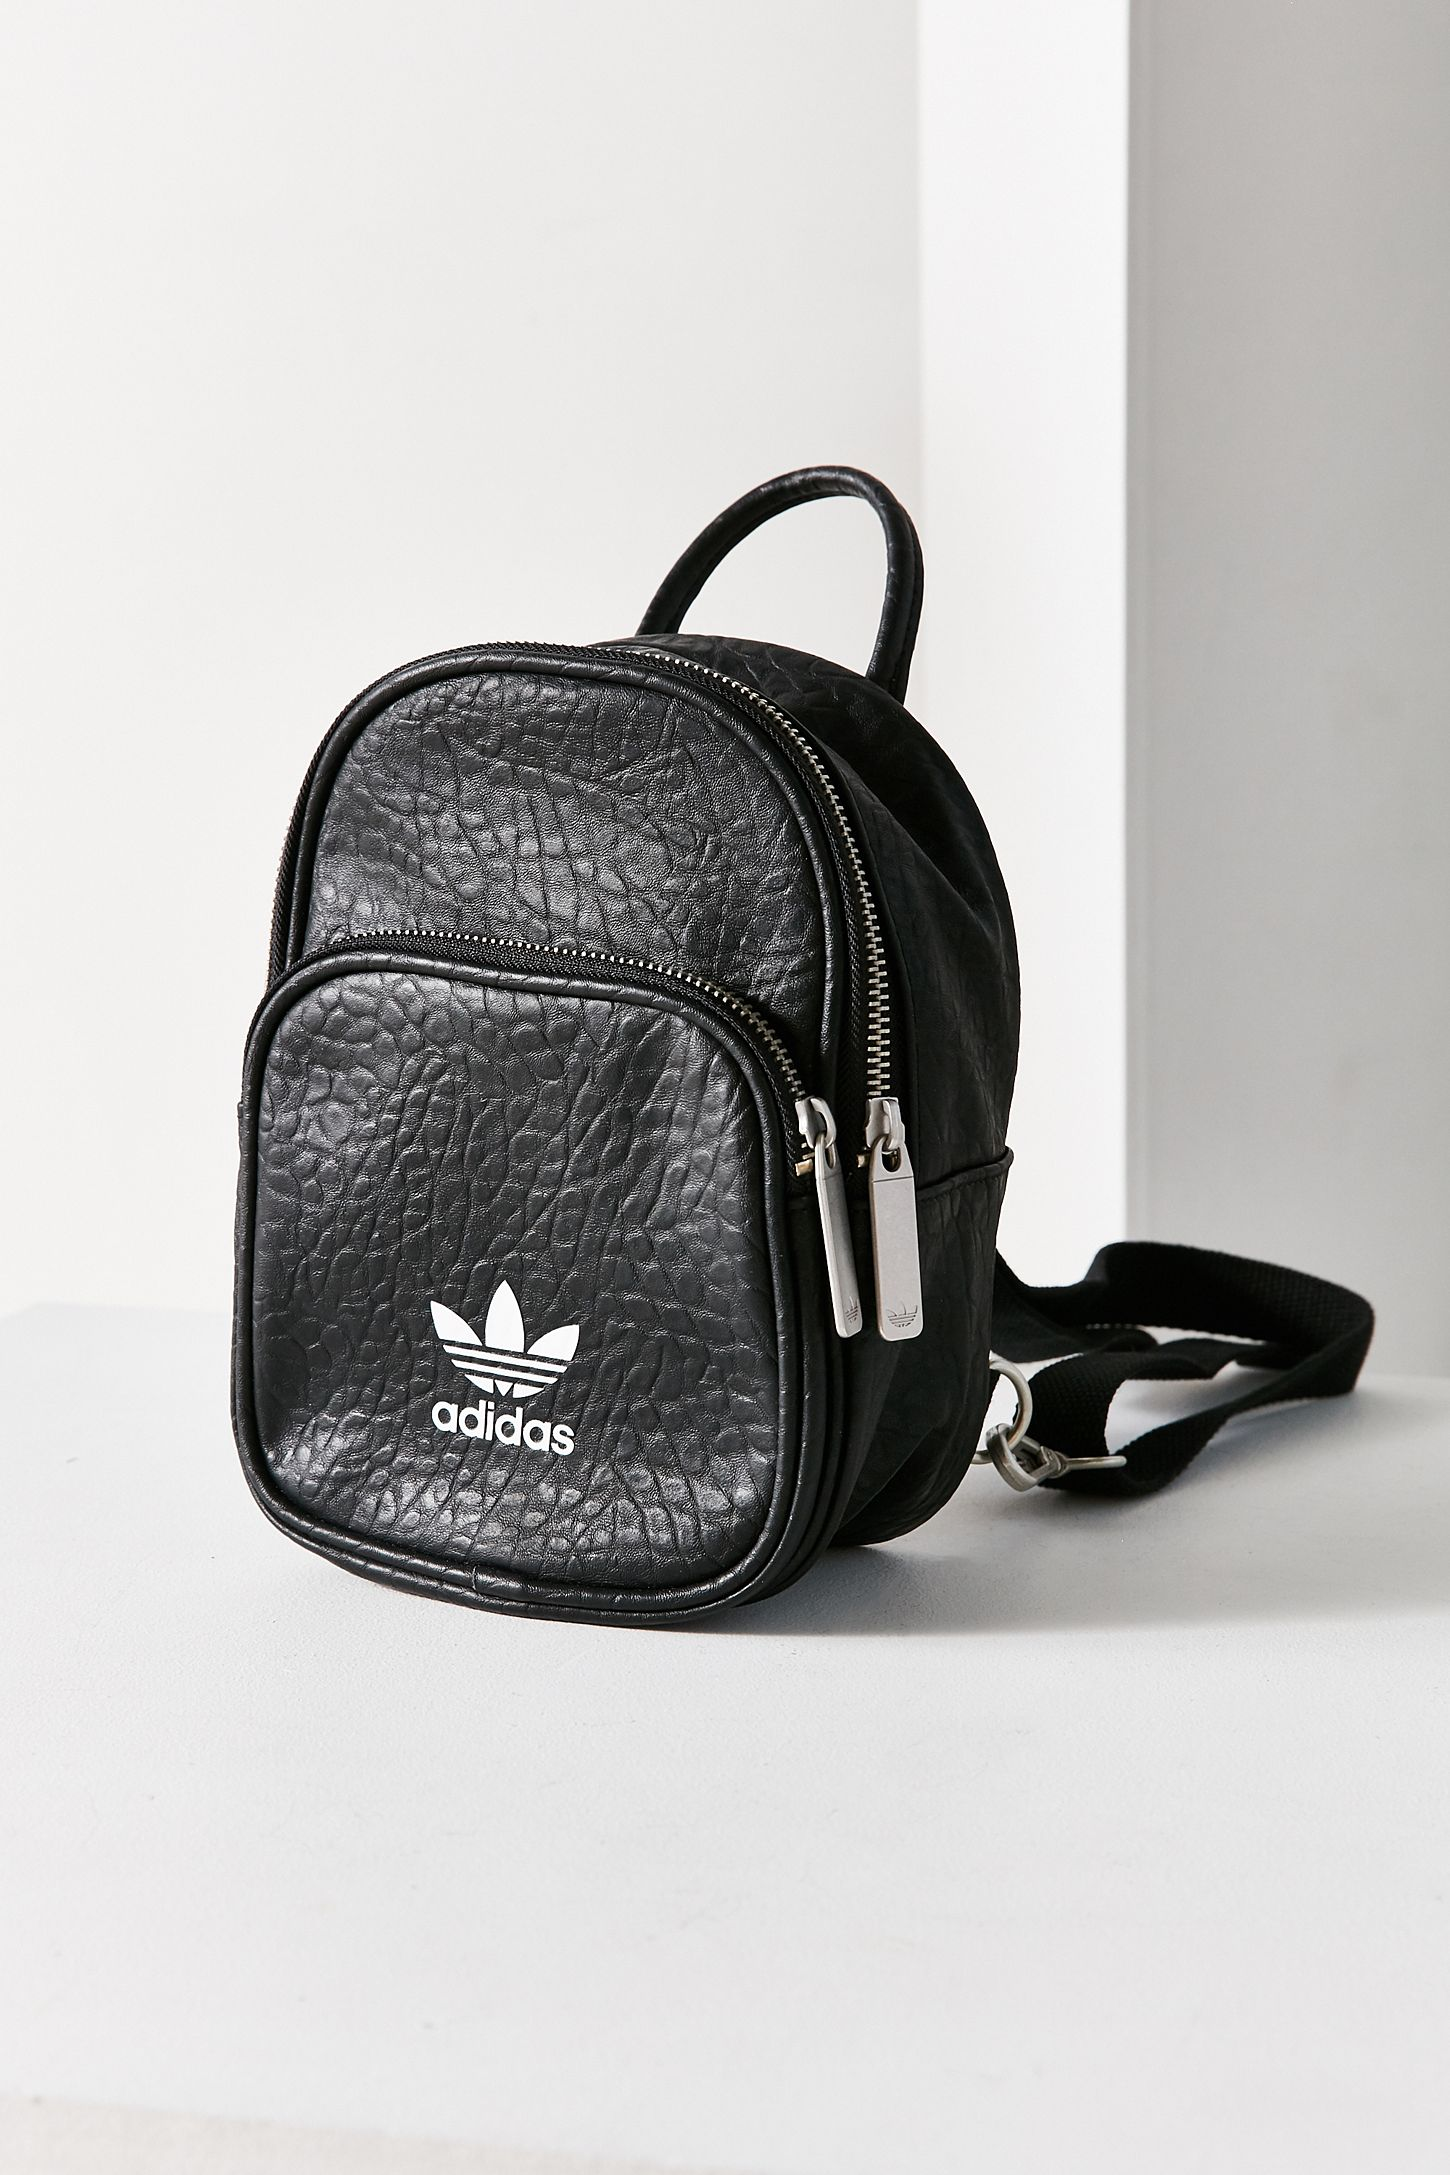 be34fcae70 Adidas Classic Vintage Mini Backpack- Fenix Toulouse Handball